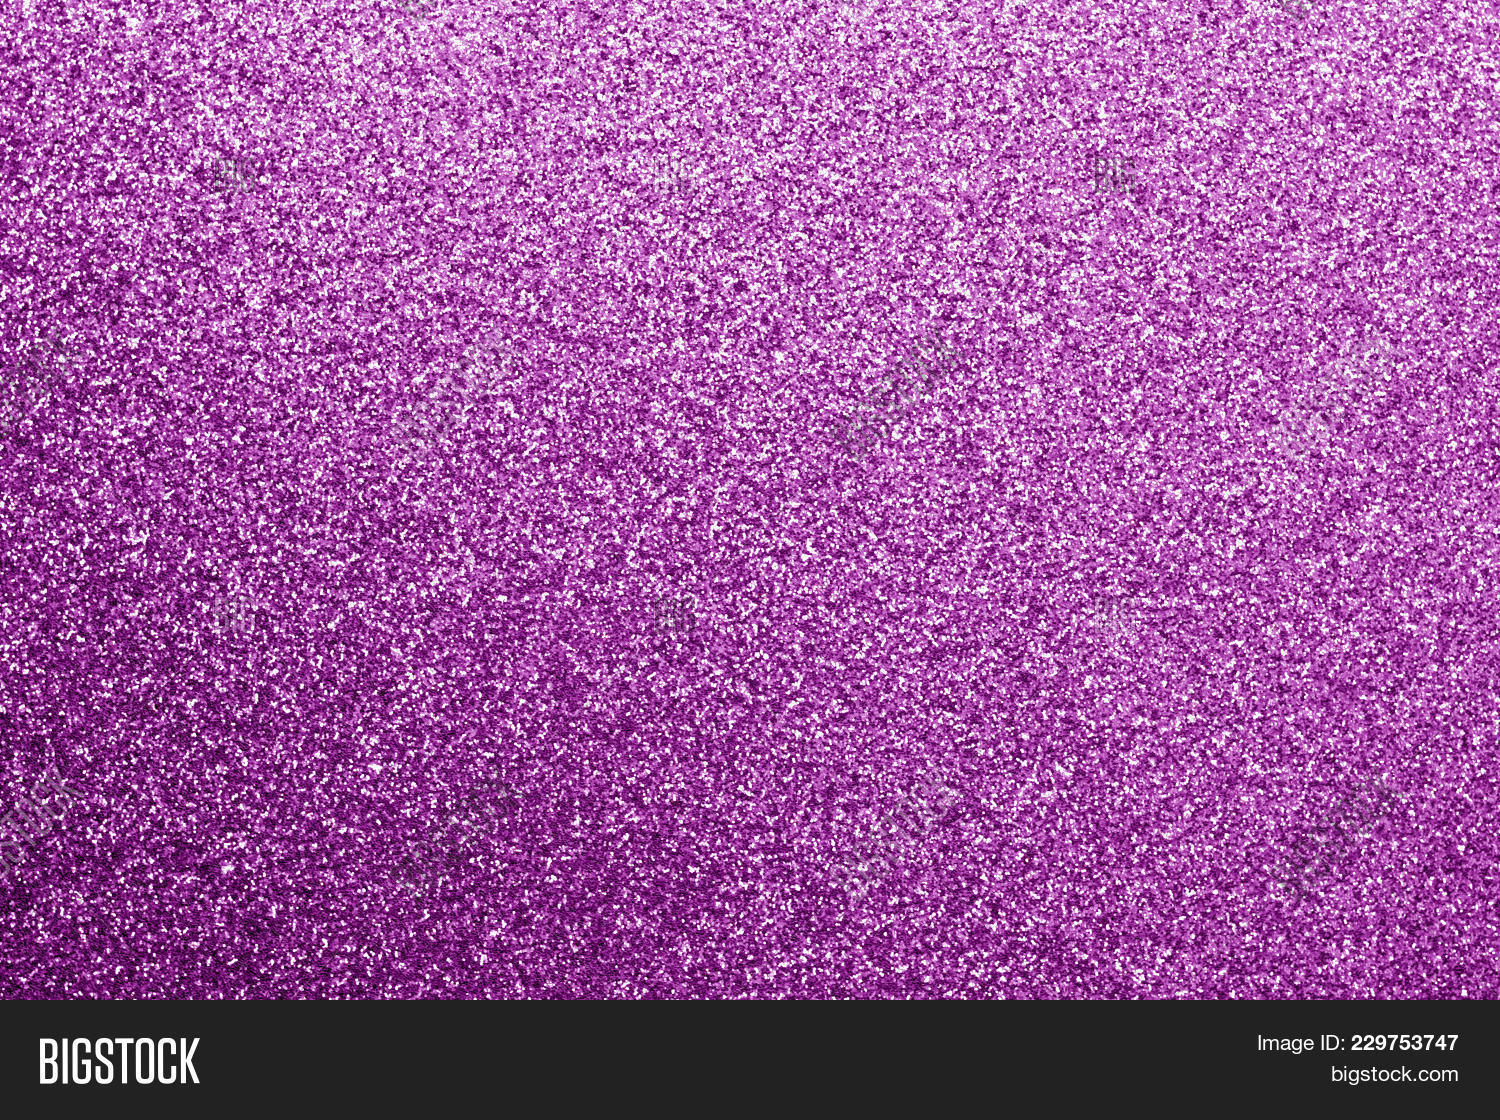 Glittering In Purple Powerpoint Template Glittering In Purple